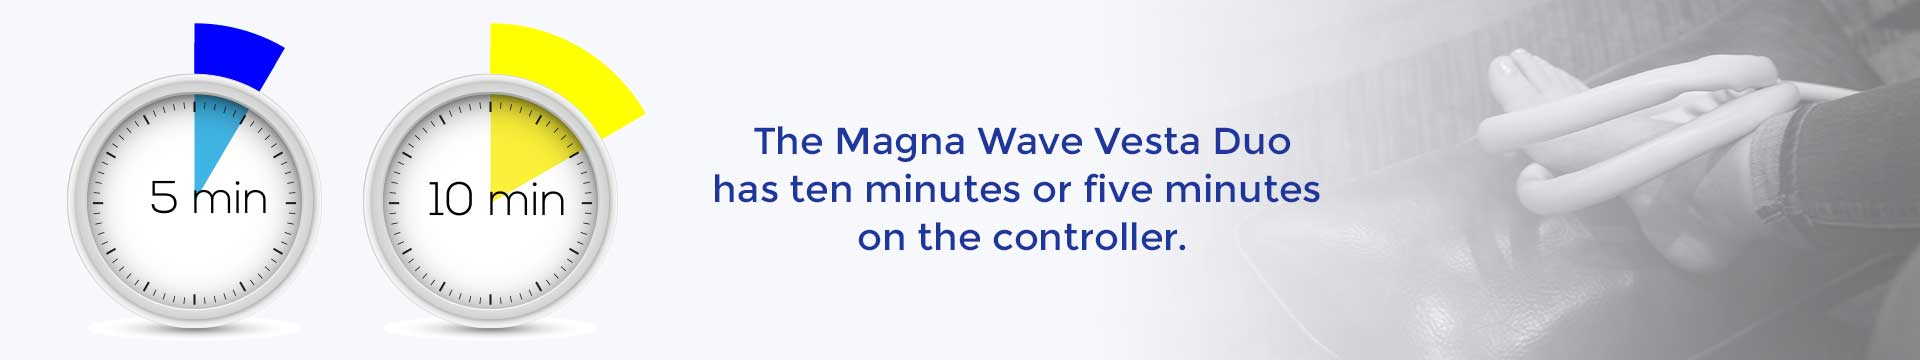 The Magna Wave Vesta Duo has ten minutes or five minutes on the controller.